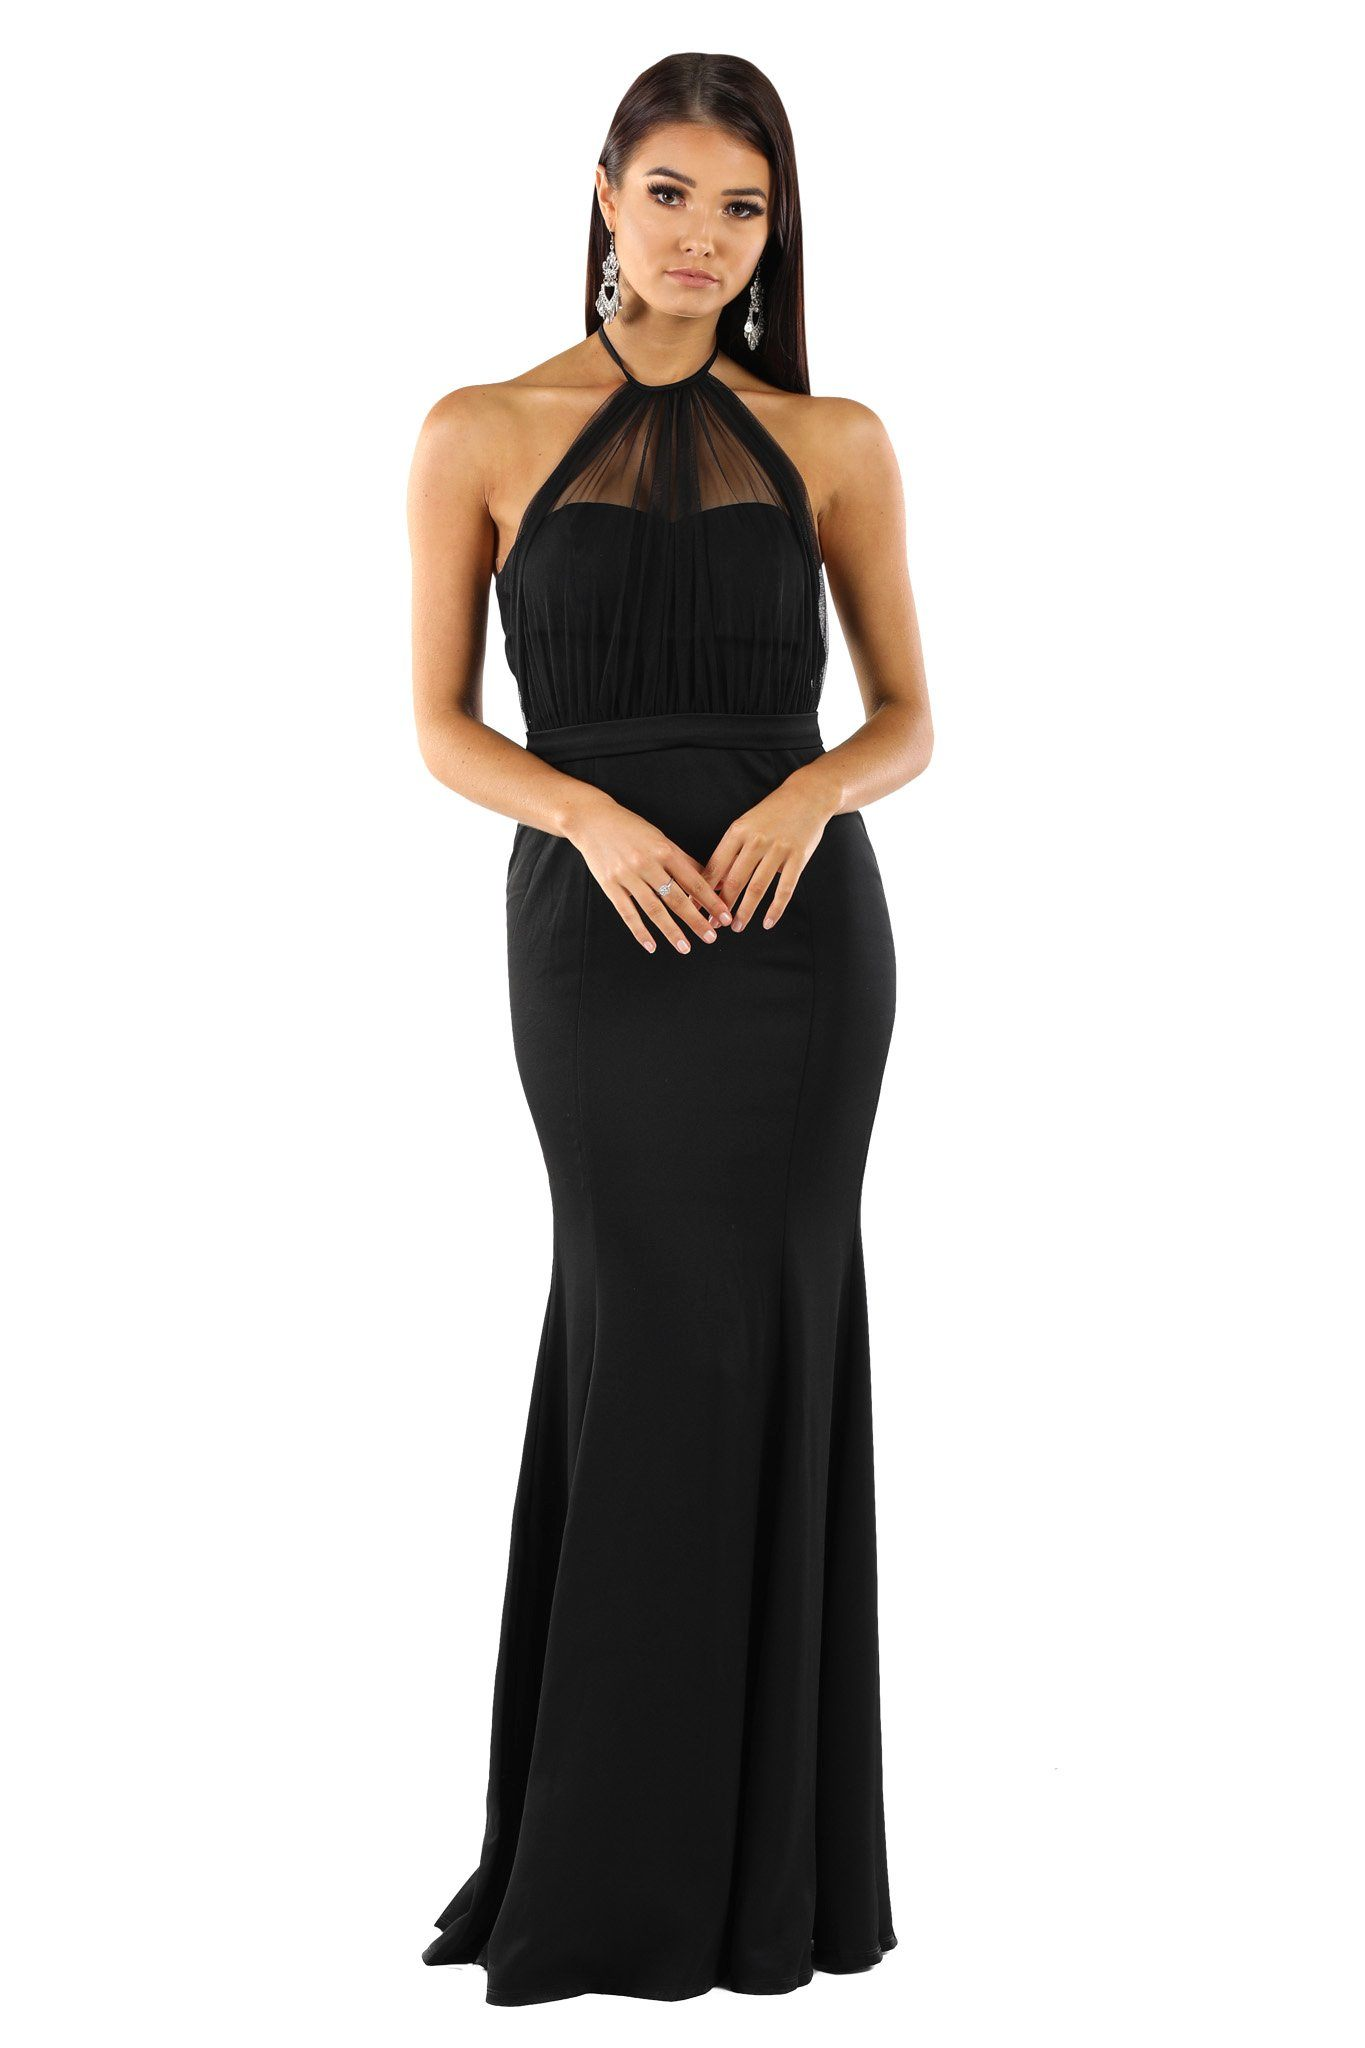 216e1708359 Black sleeveless maxi floor length dress with draped chiffon top over  strapless sweetheart bodice